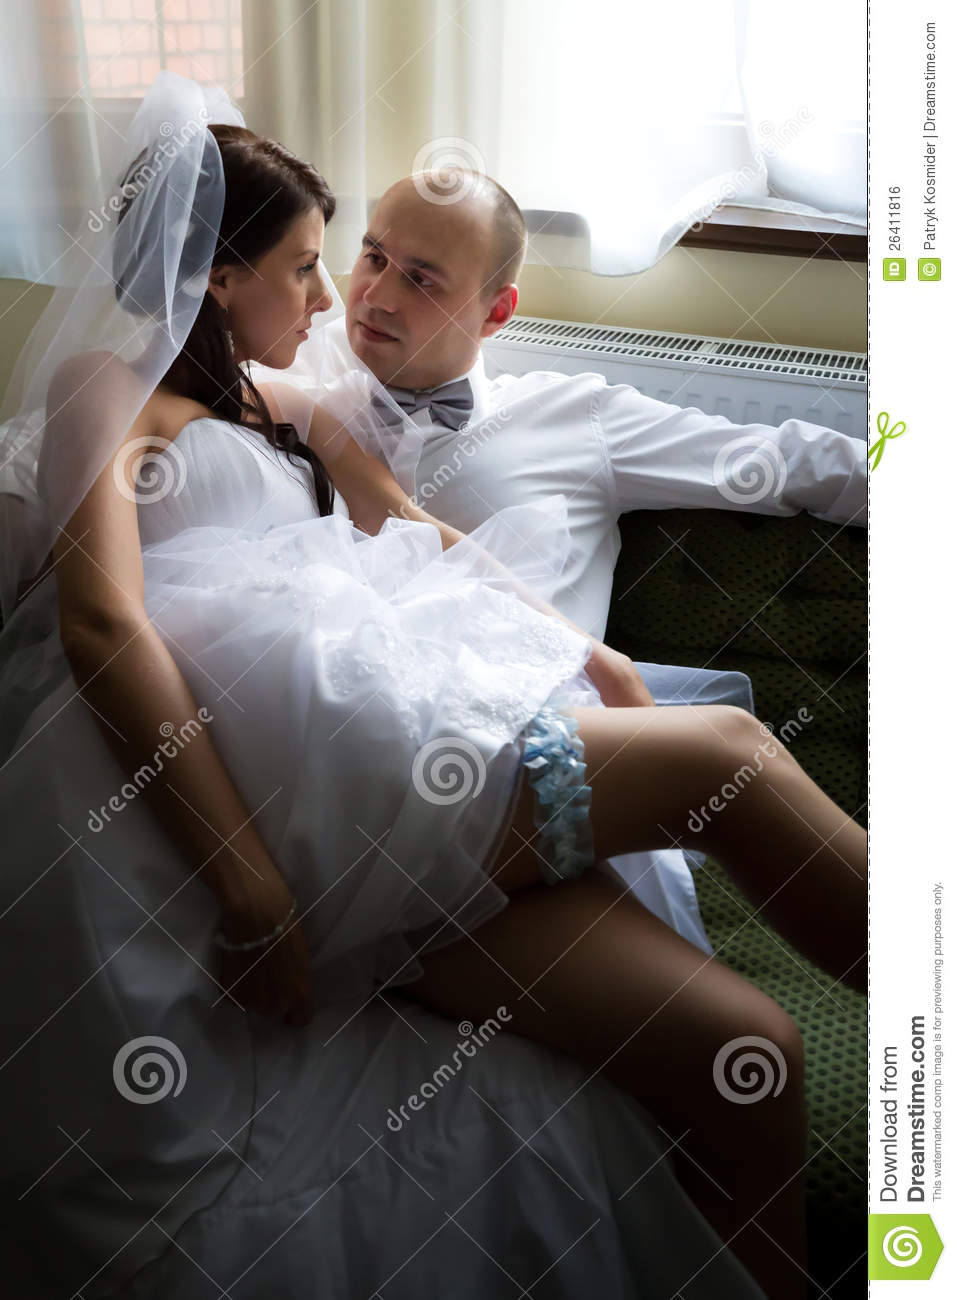 Sofa U Bride With Groom On The Sofa Stock Photo - Image Of Male